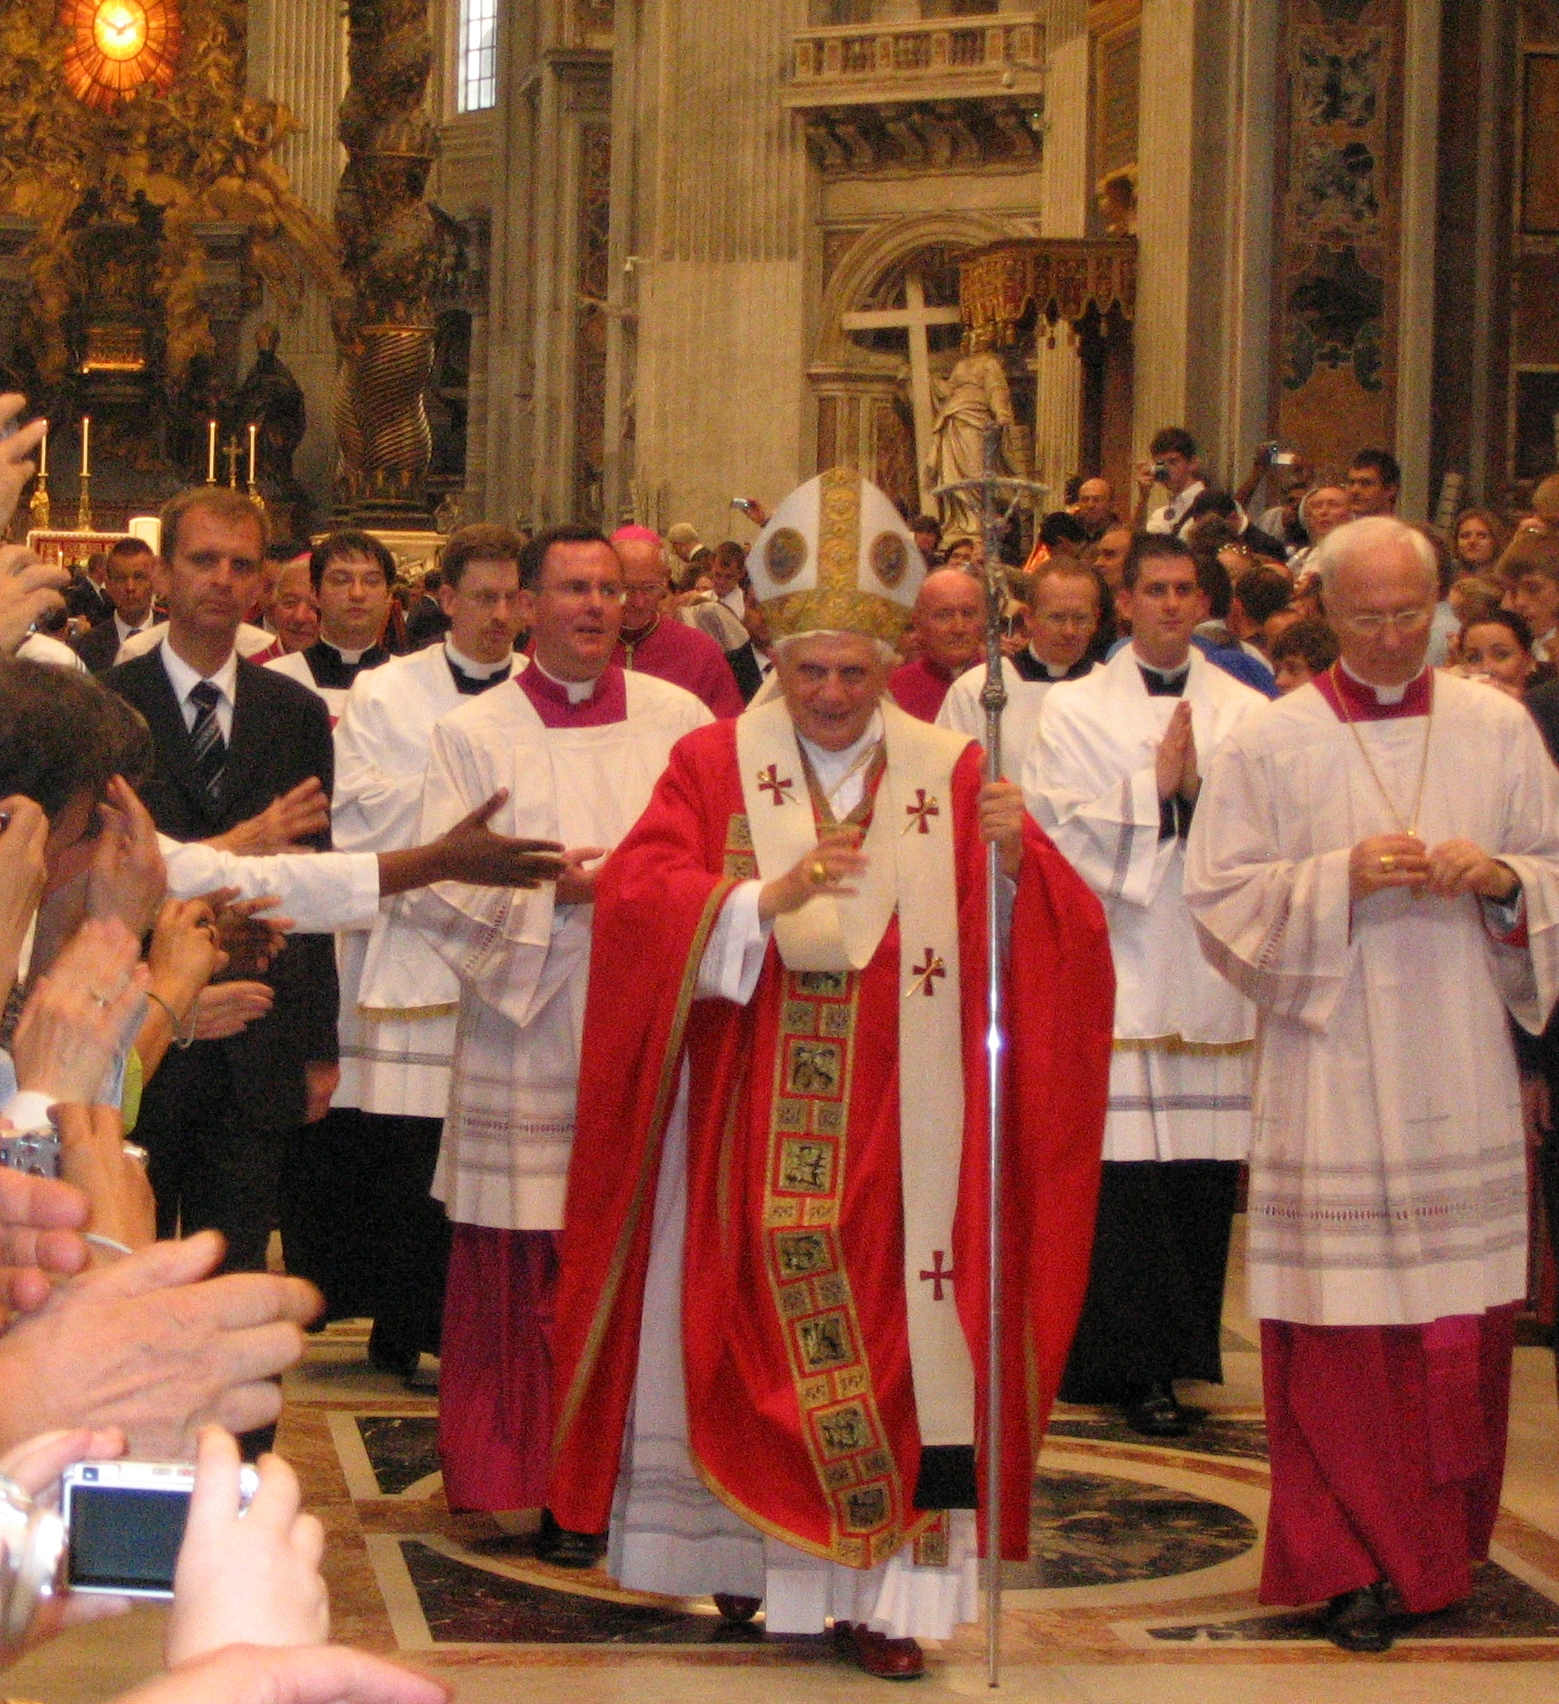 http://upload.wikimedia.org/wikipedia/commons/4/4c/Pope_Benedictus_XVI_blessing_after_messe.jpg